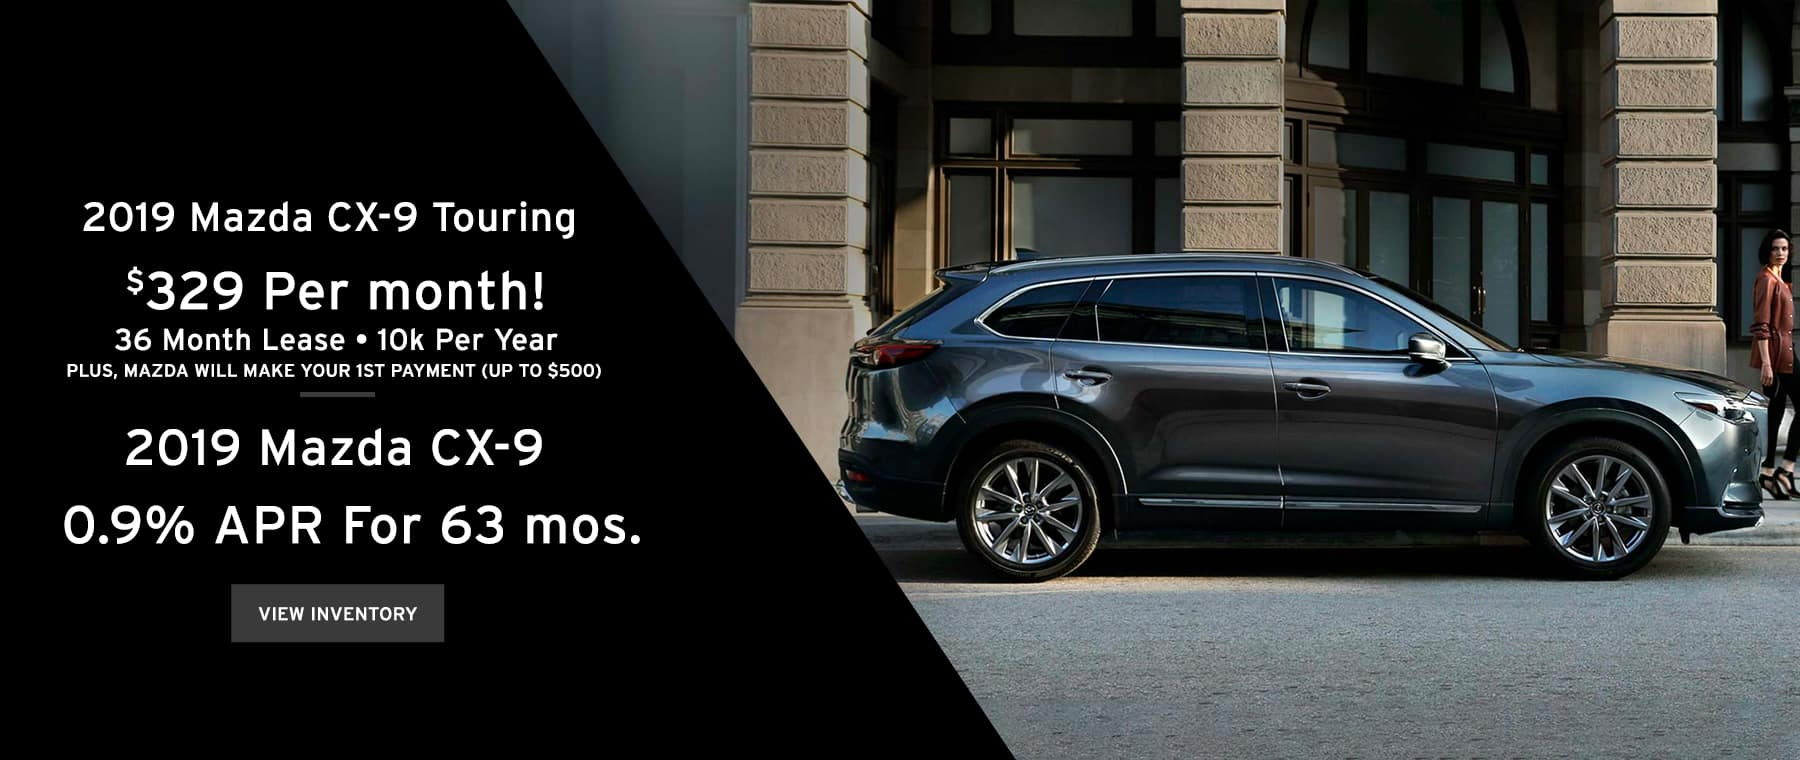 New Mazda CX-9 Offers at Cooley Mazda